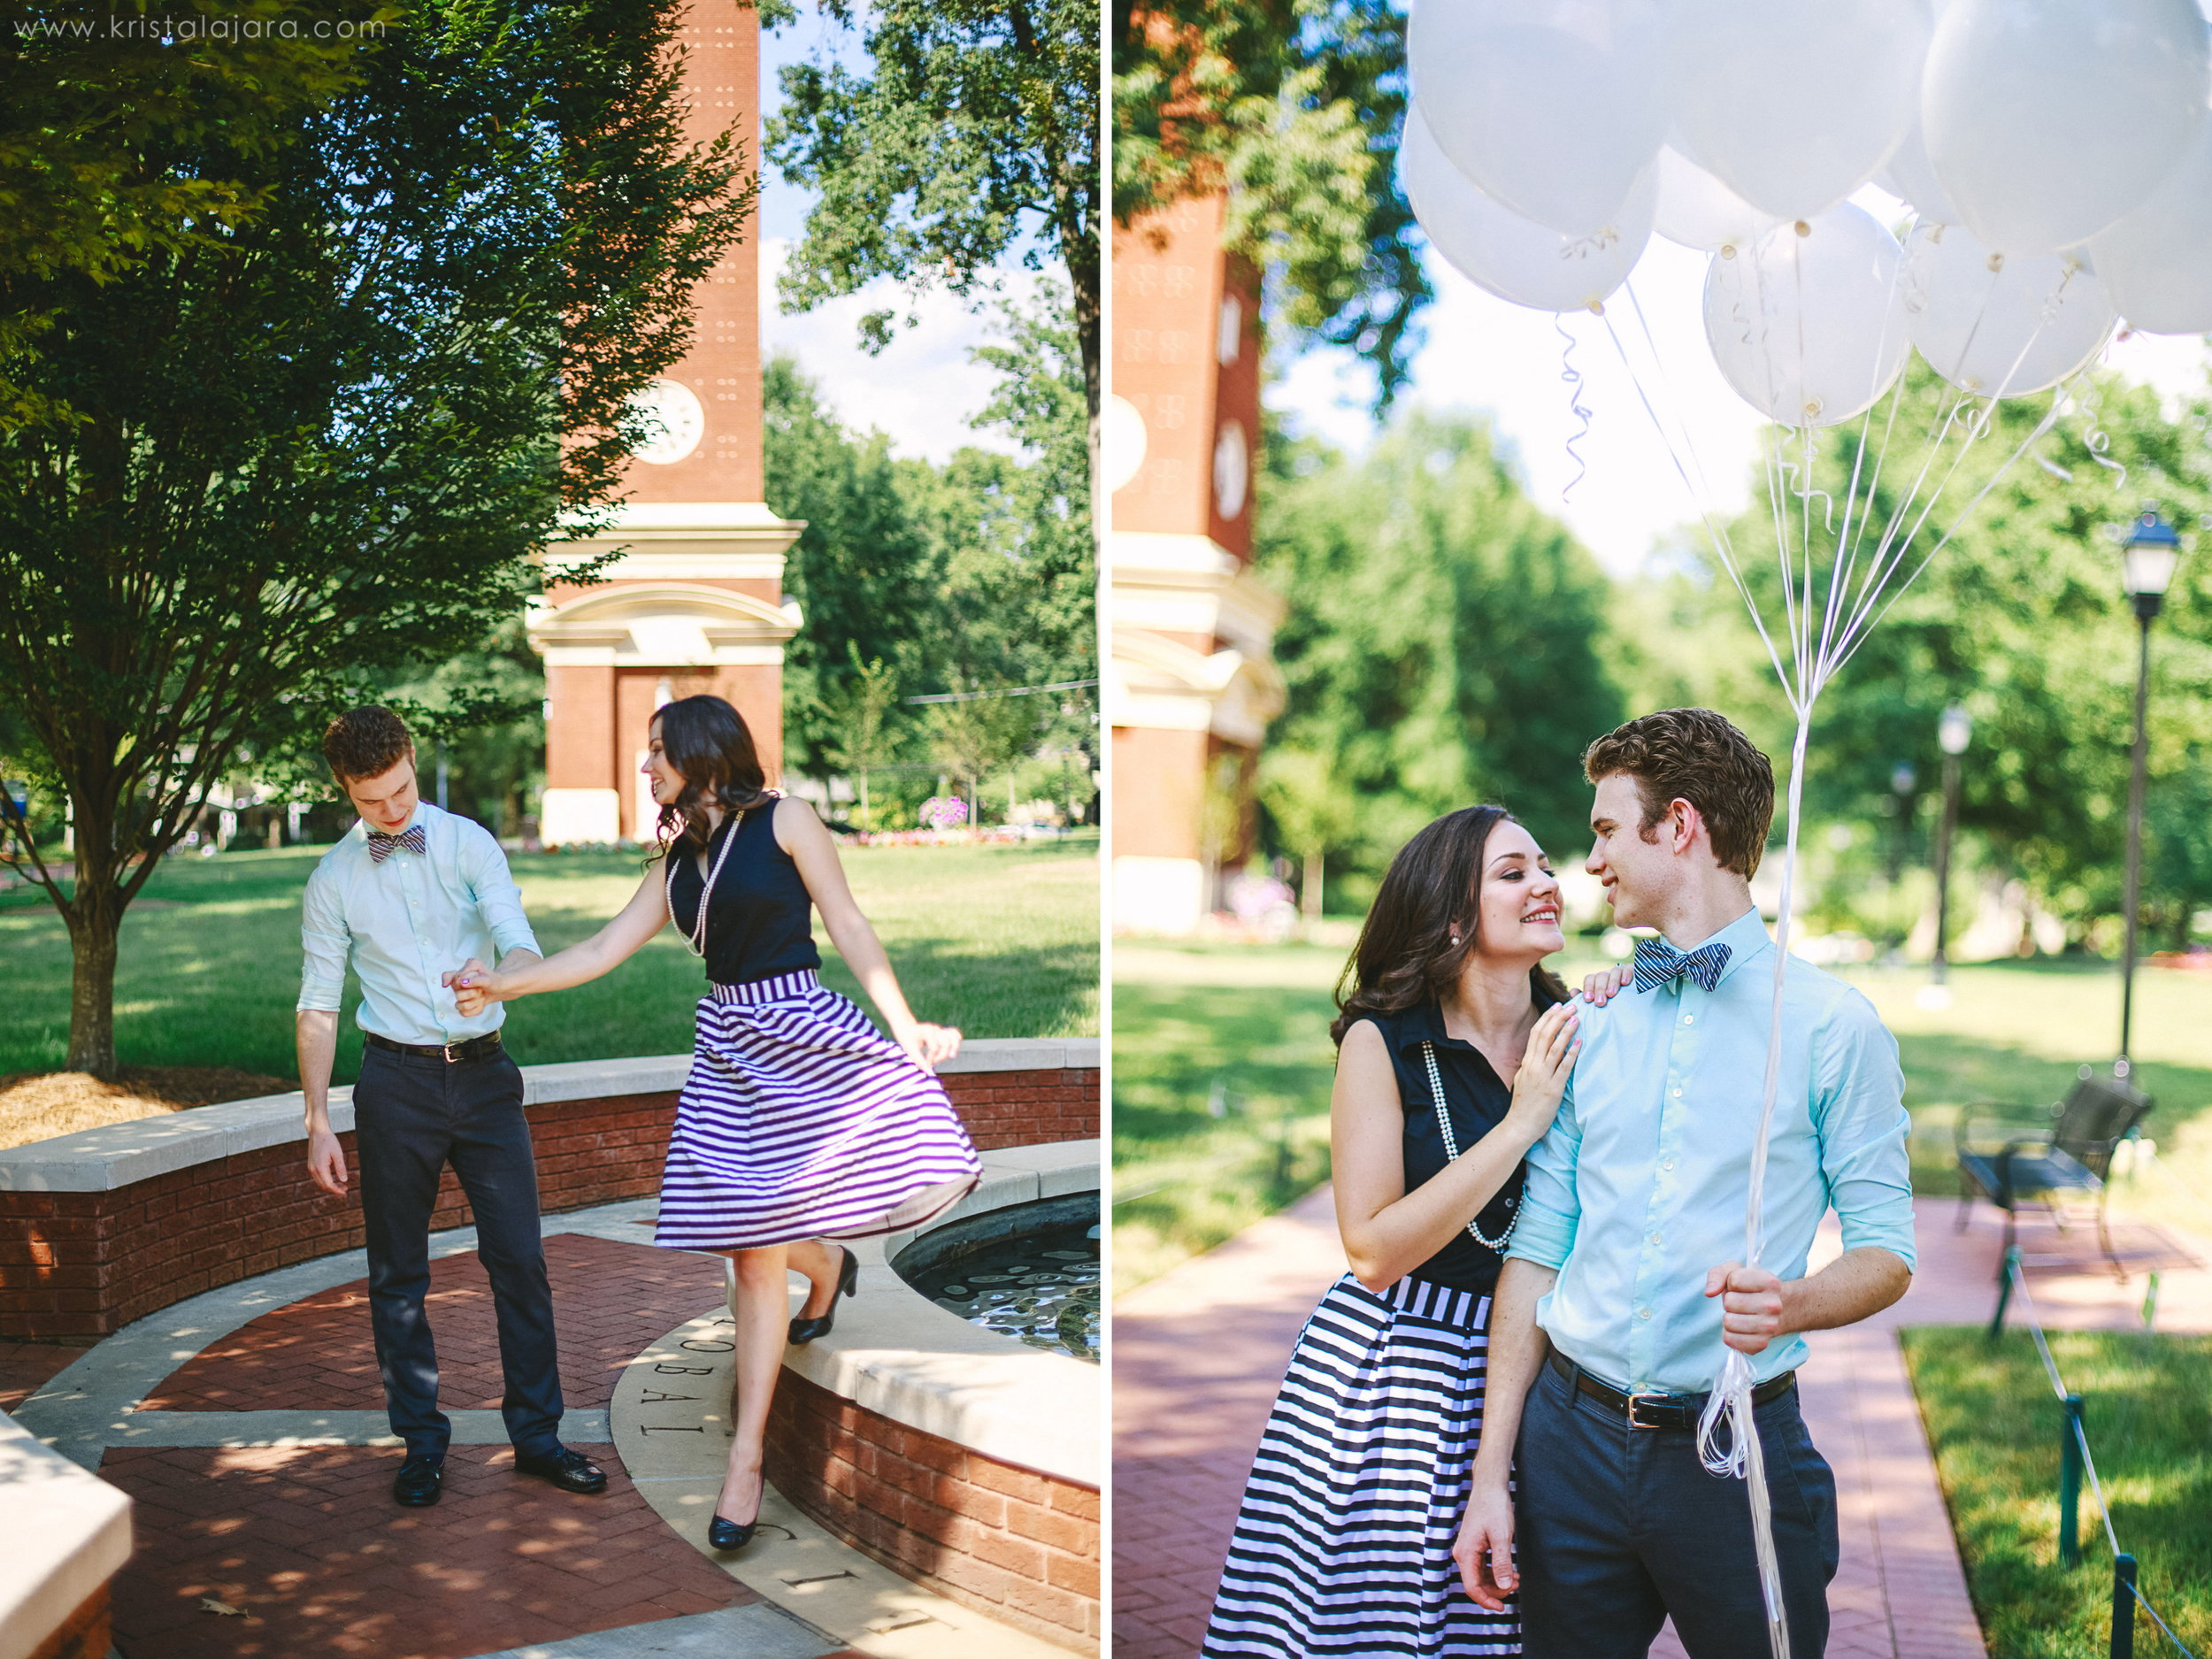 Kaitlyn + Christian // Queens University, Charlotte, NC // Krista Lajara Photography